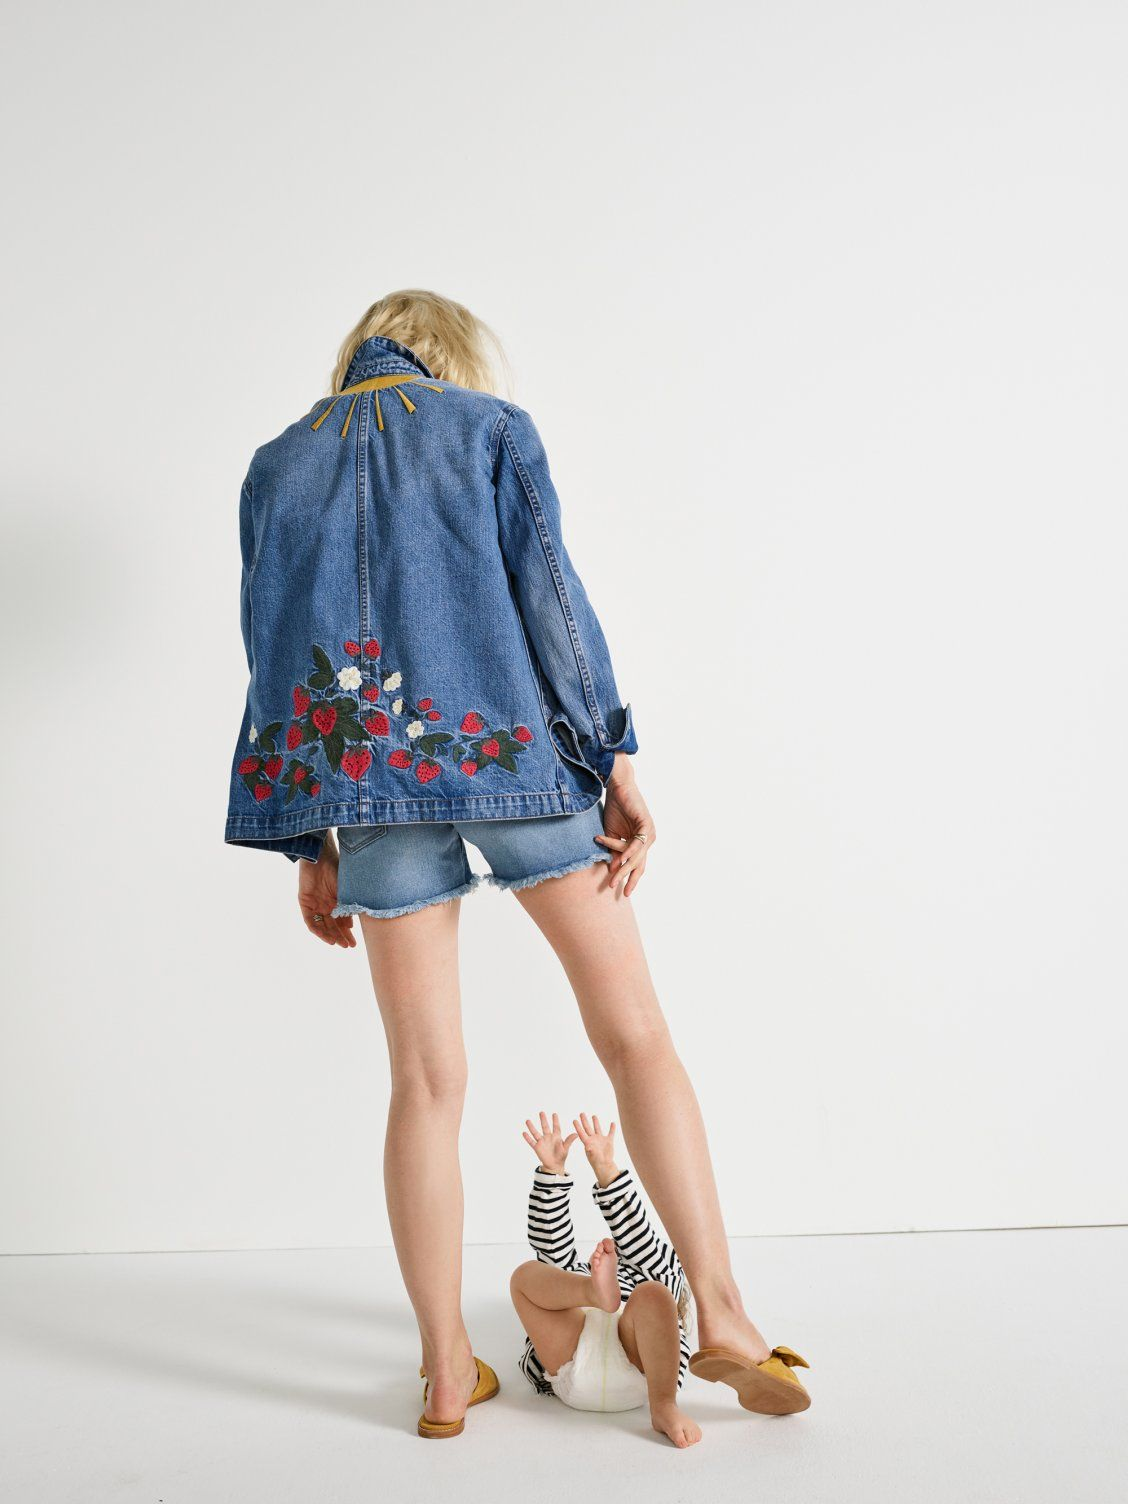 0e9d9e53a5c7 our friend sarah wears madewell strawberry embroidered workwear jacket